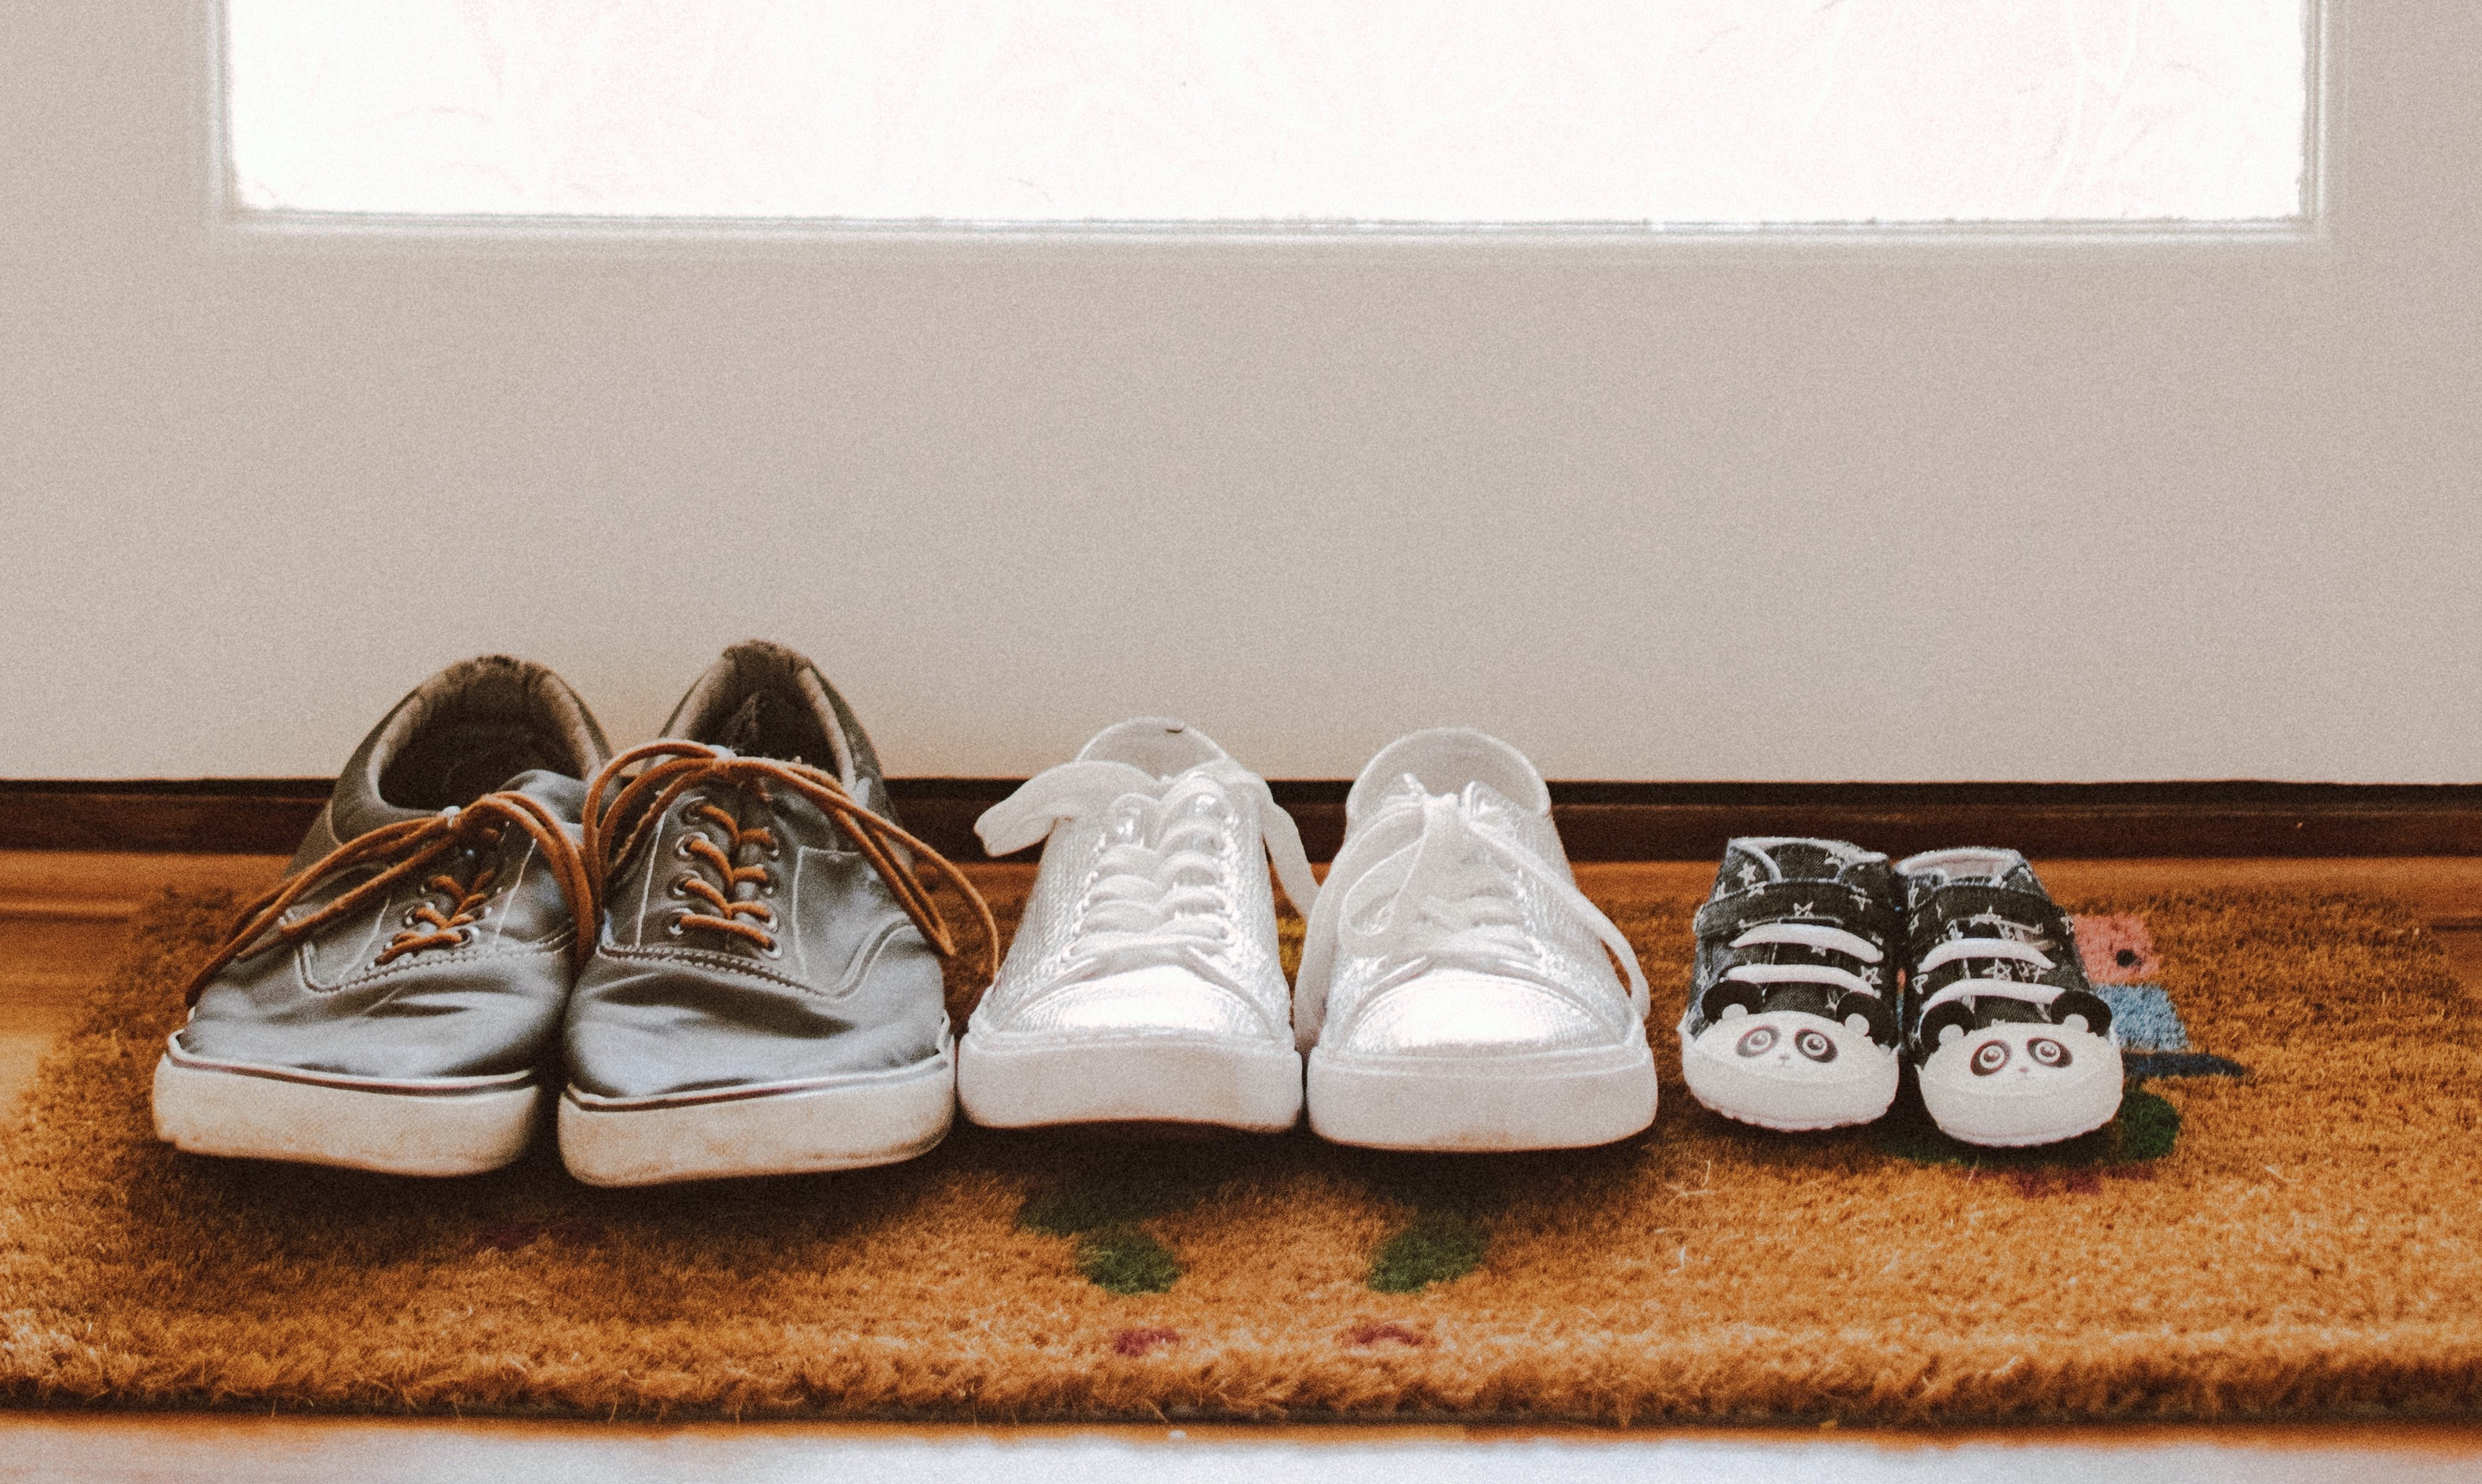 Three pairs of used shoes in different sizes and styles sit on a matt.